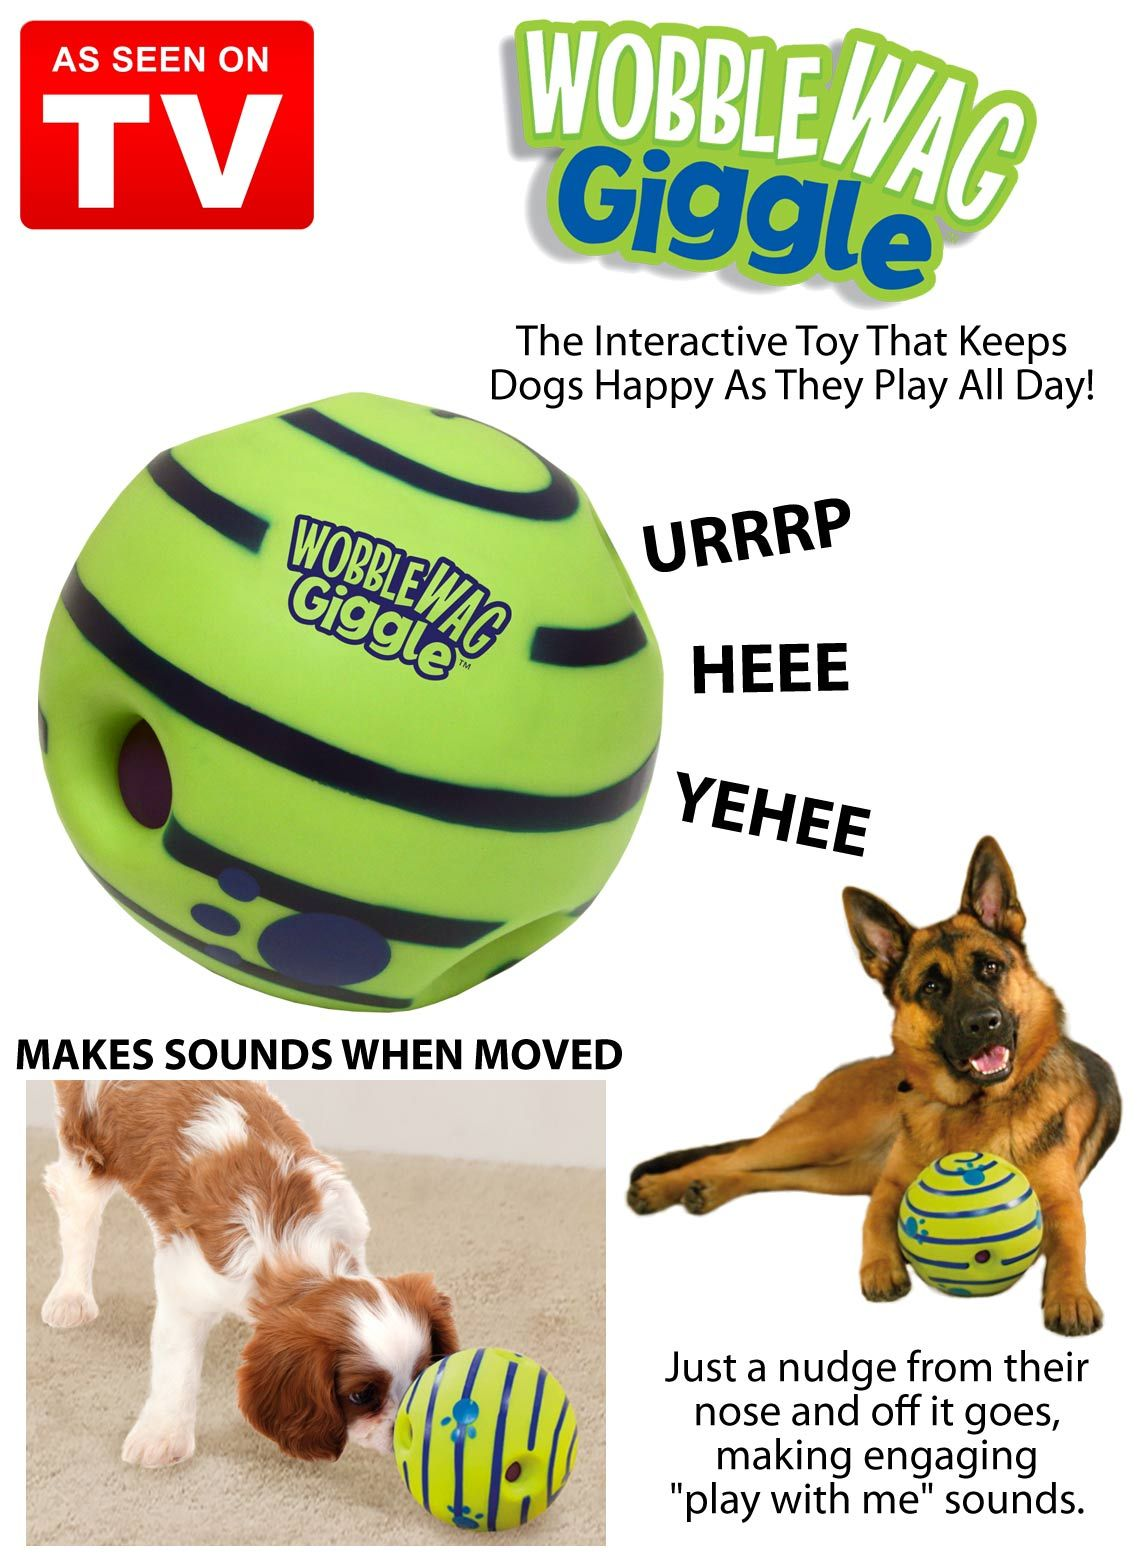 The Wobble Wag Giggle Ball From As Seen On Tv Is The Interactive